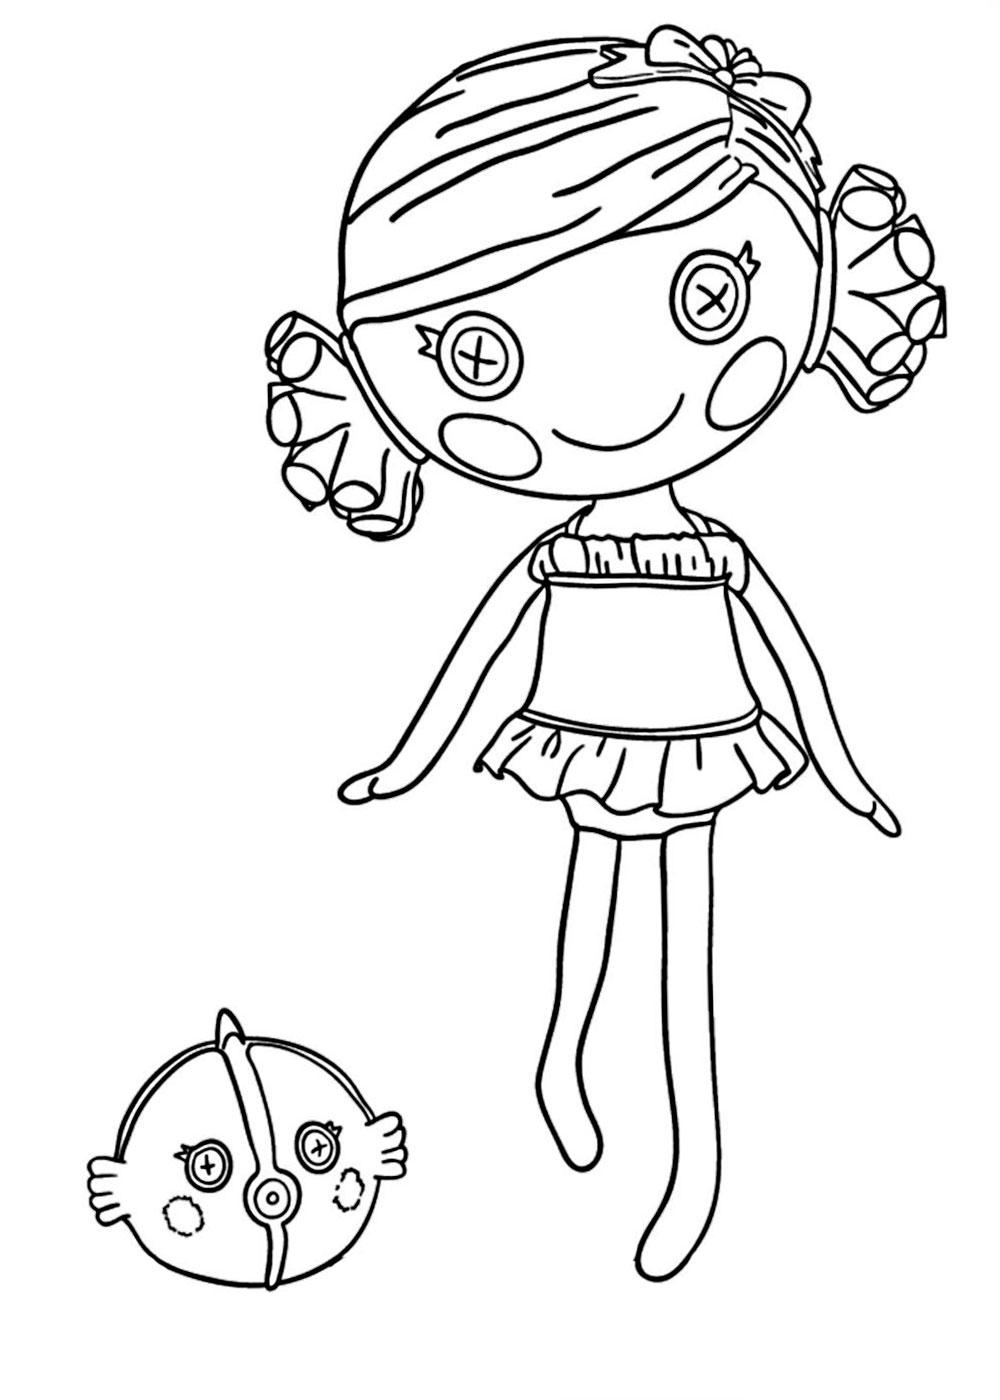 Coloring Pages Coloring Pages Lalaloopsy lalaloopsy coloring pages for girls to print free pages